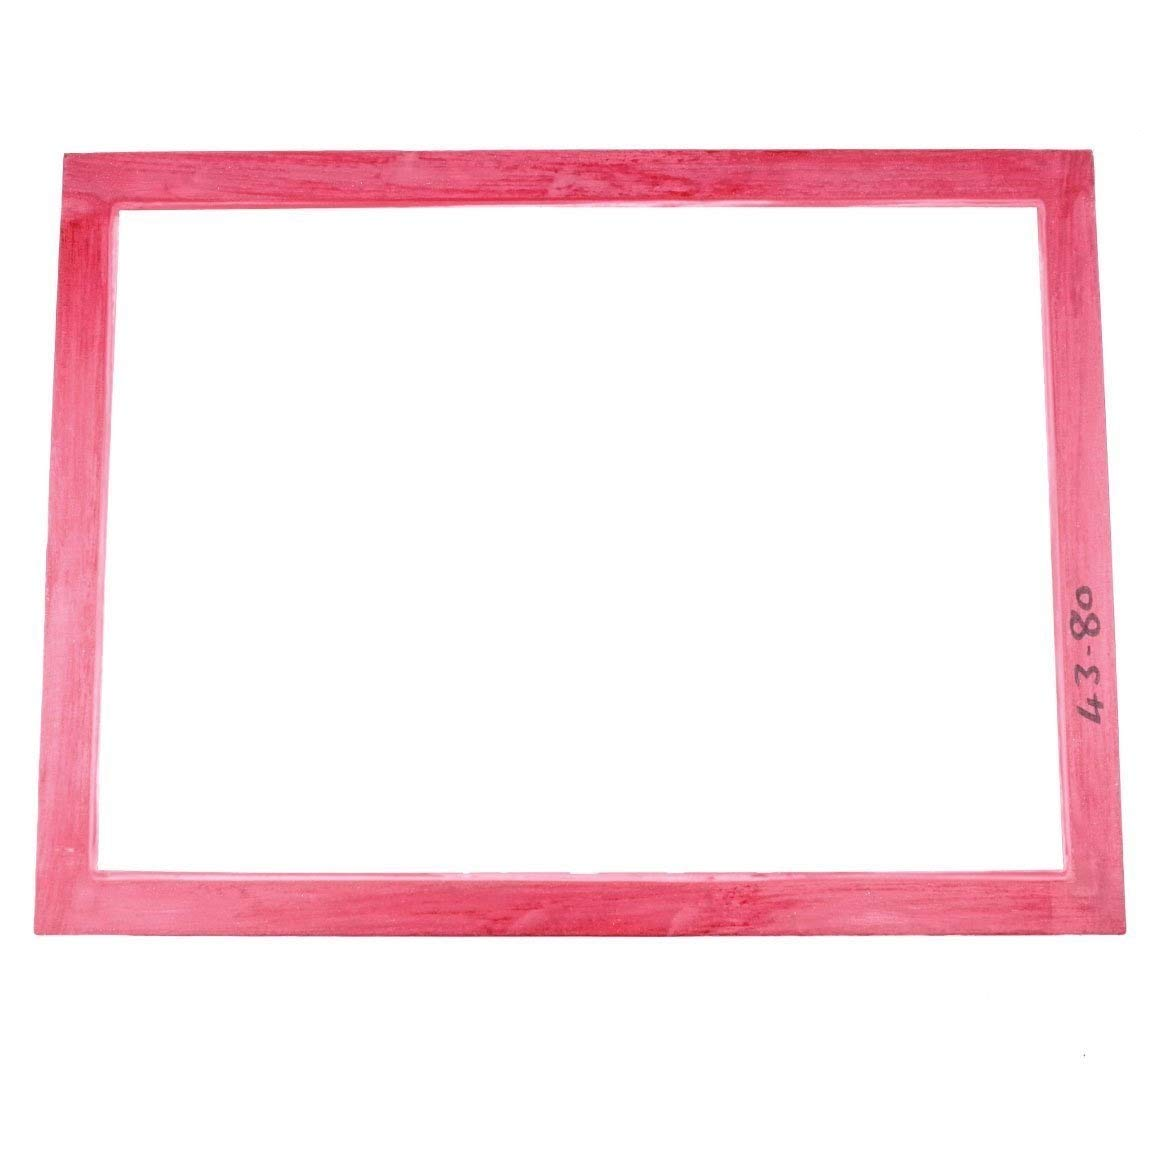 A5 120T Aluminium Screen Printing frame by Hunt The Moon